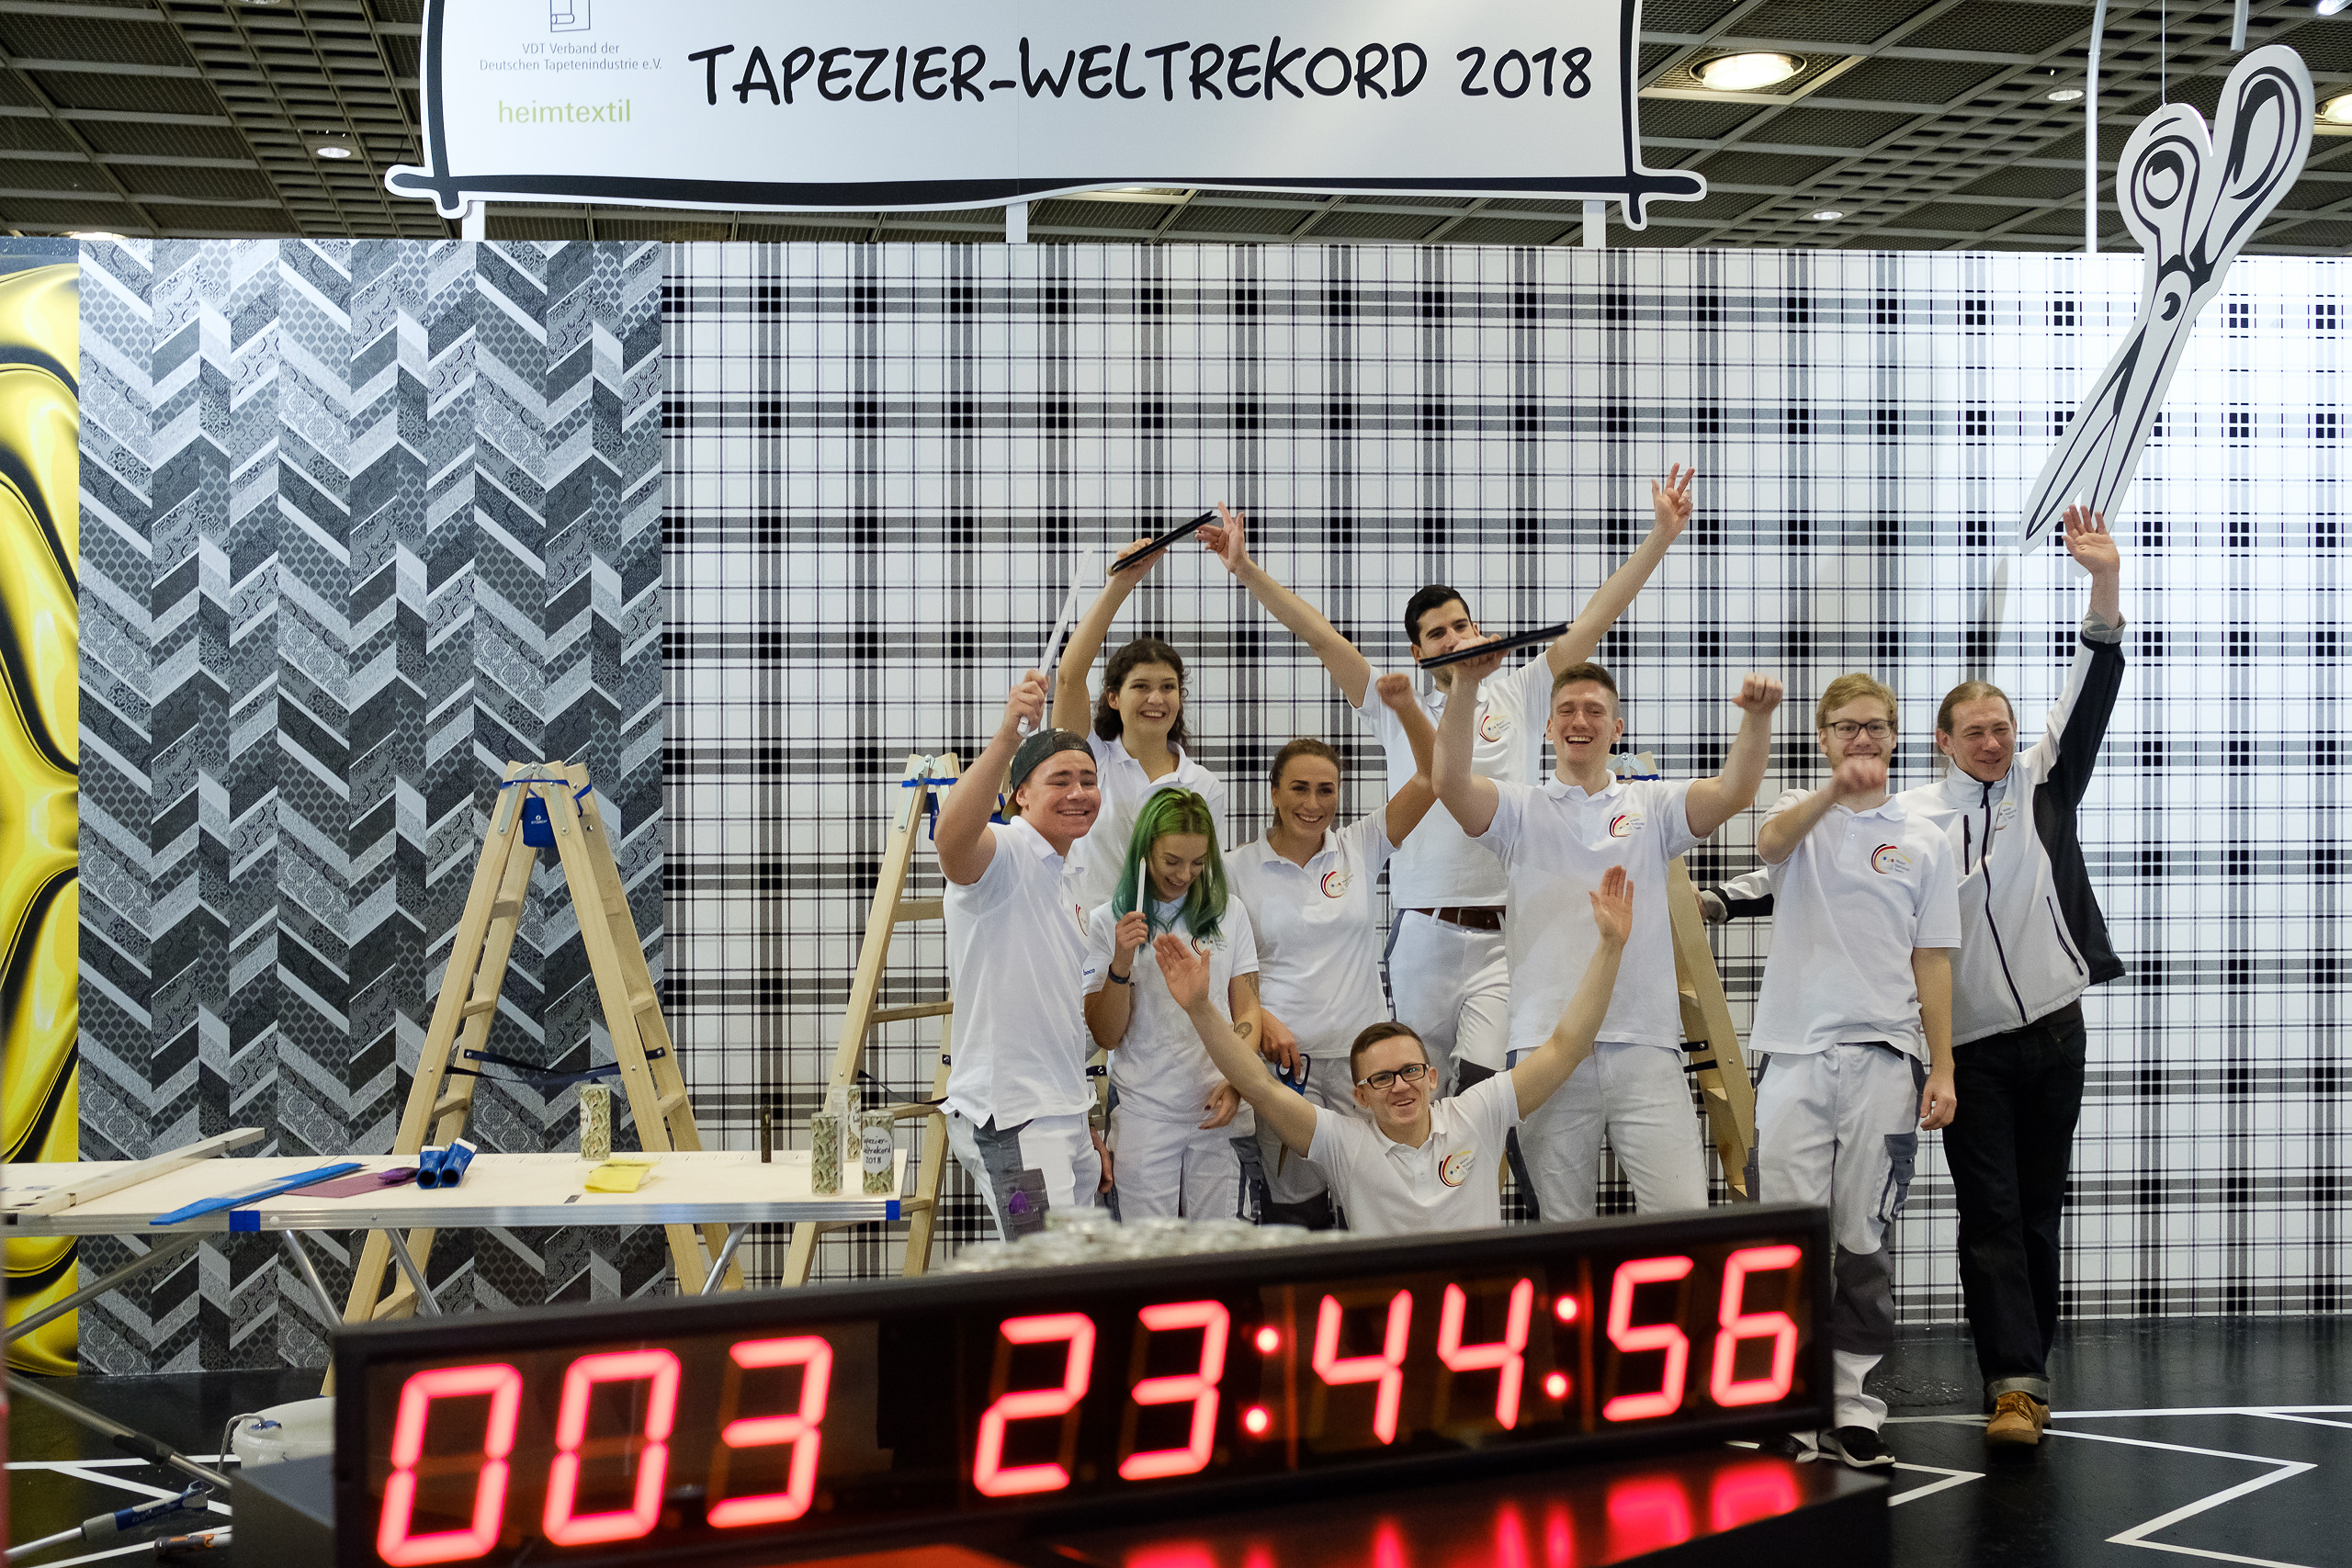 Heimtextil-paperhanging-world record